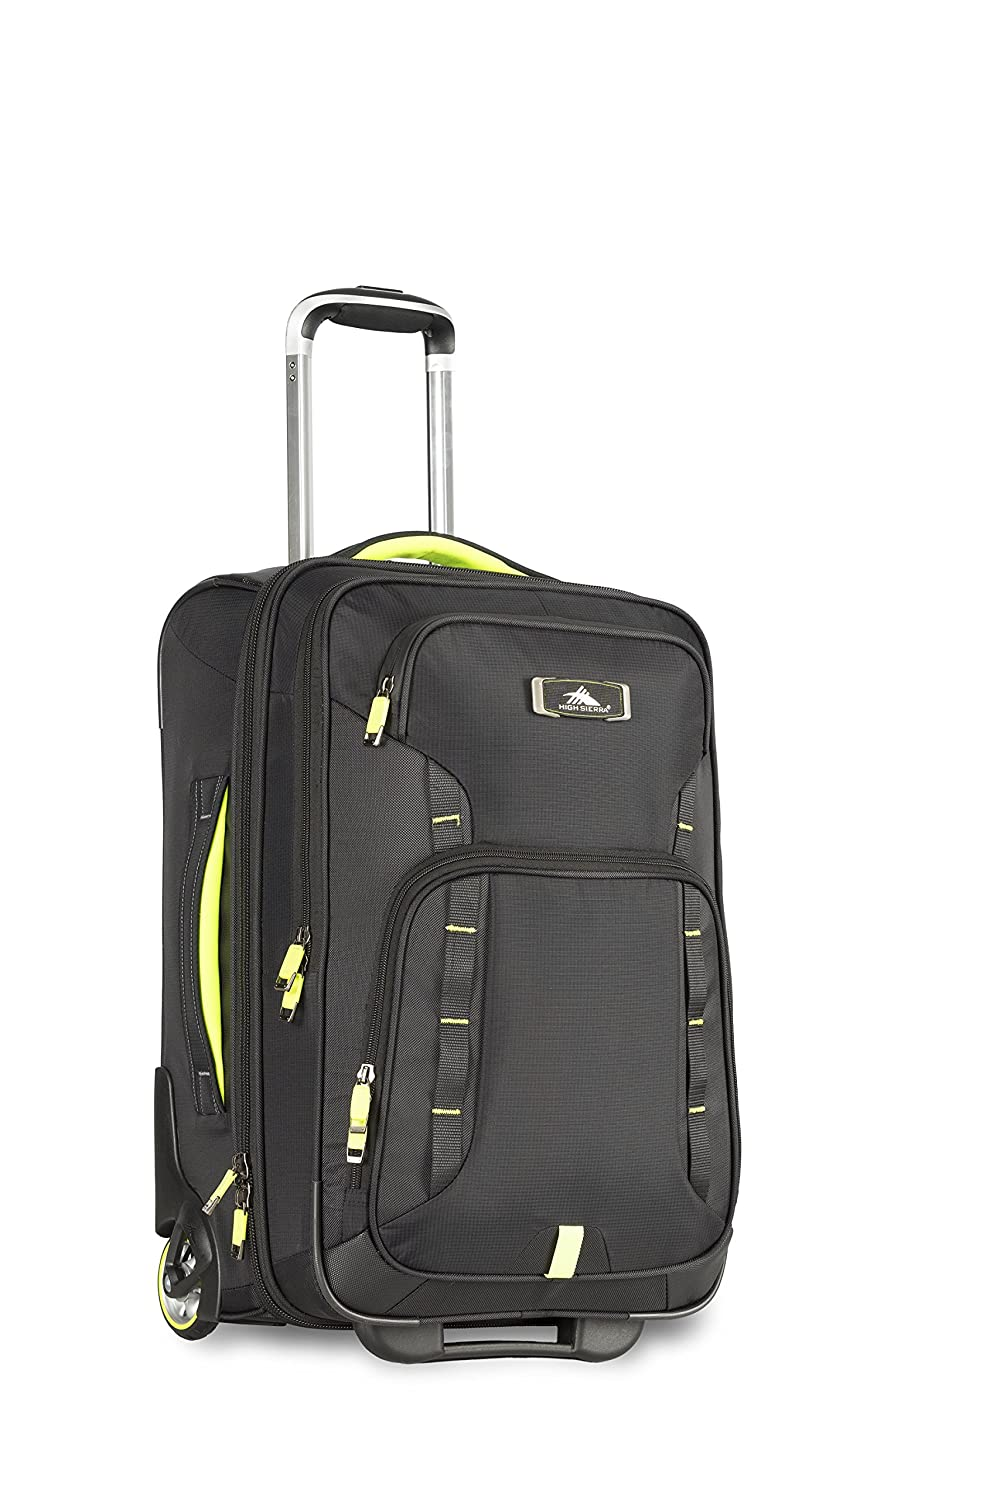 8f2aa3d6b890 Amazon.com  High Sierra AT8 Wheeled Carry-On with Pack N Go Backpack ...